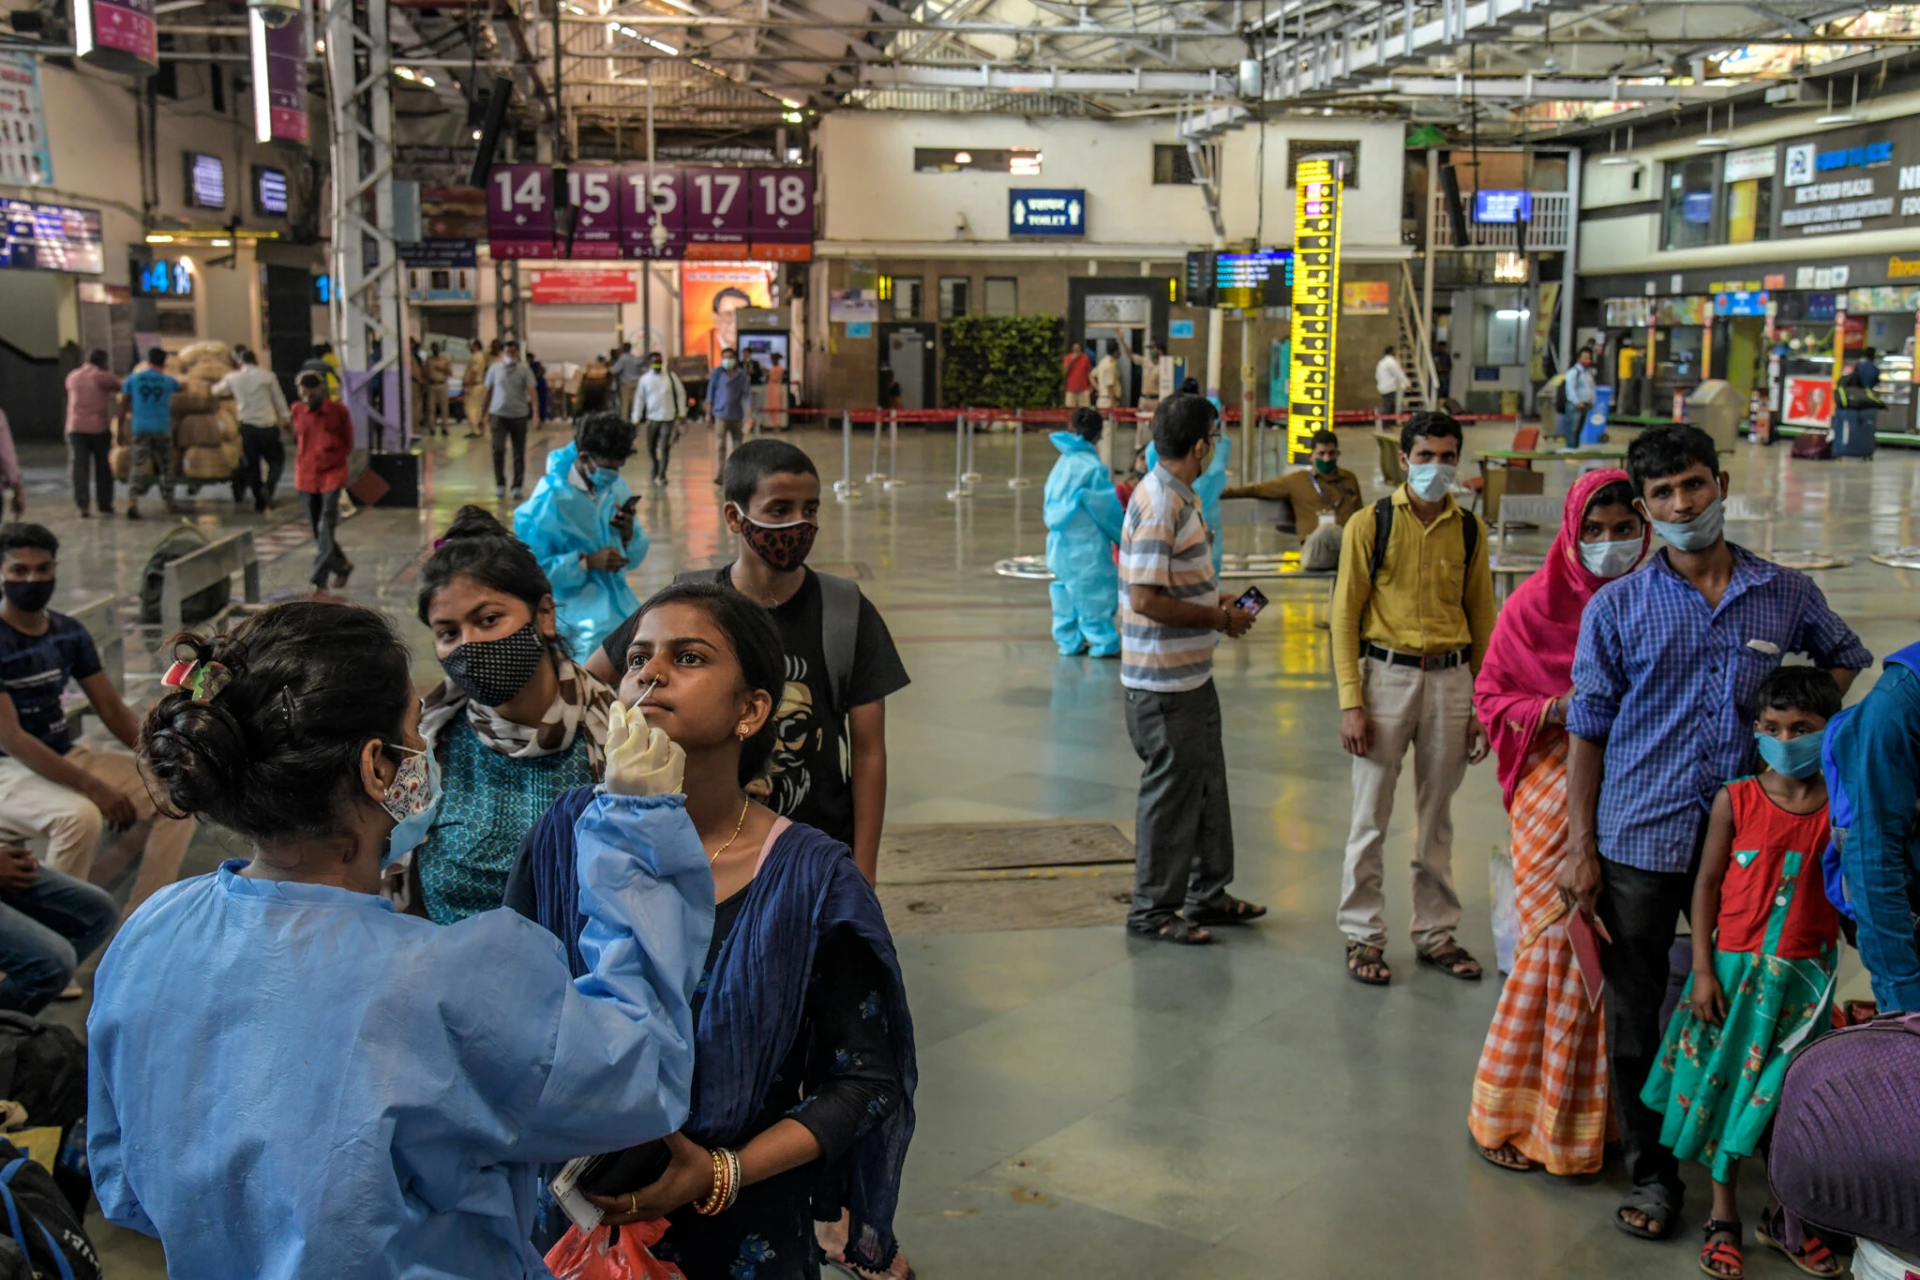 Health workers testing recent arrivals at a train station in Mumbai earlier this month. (Photo: New York Times)